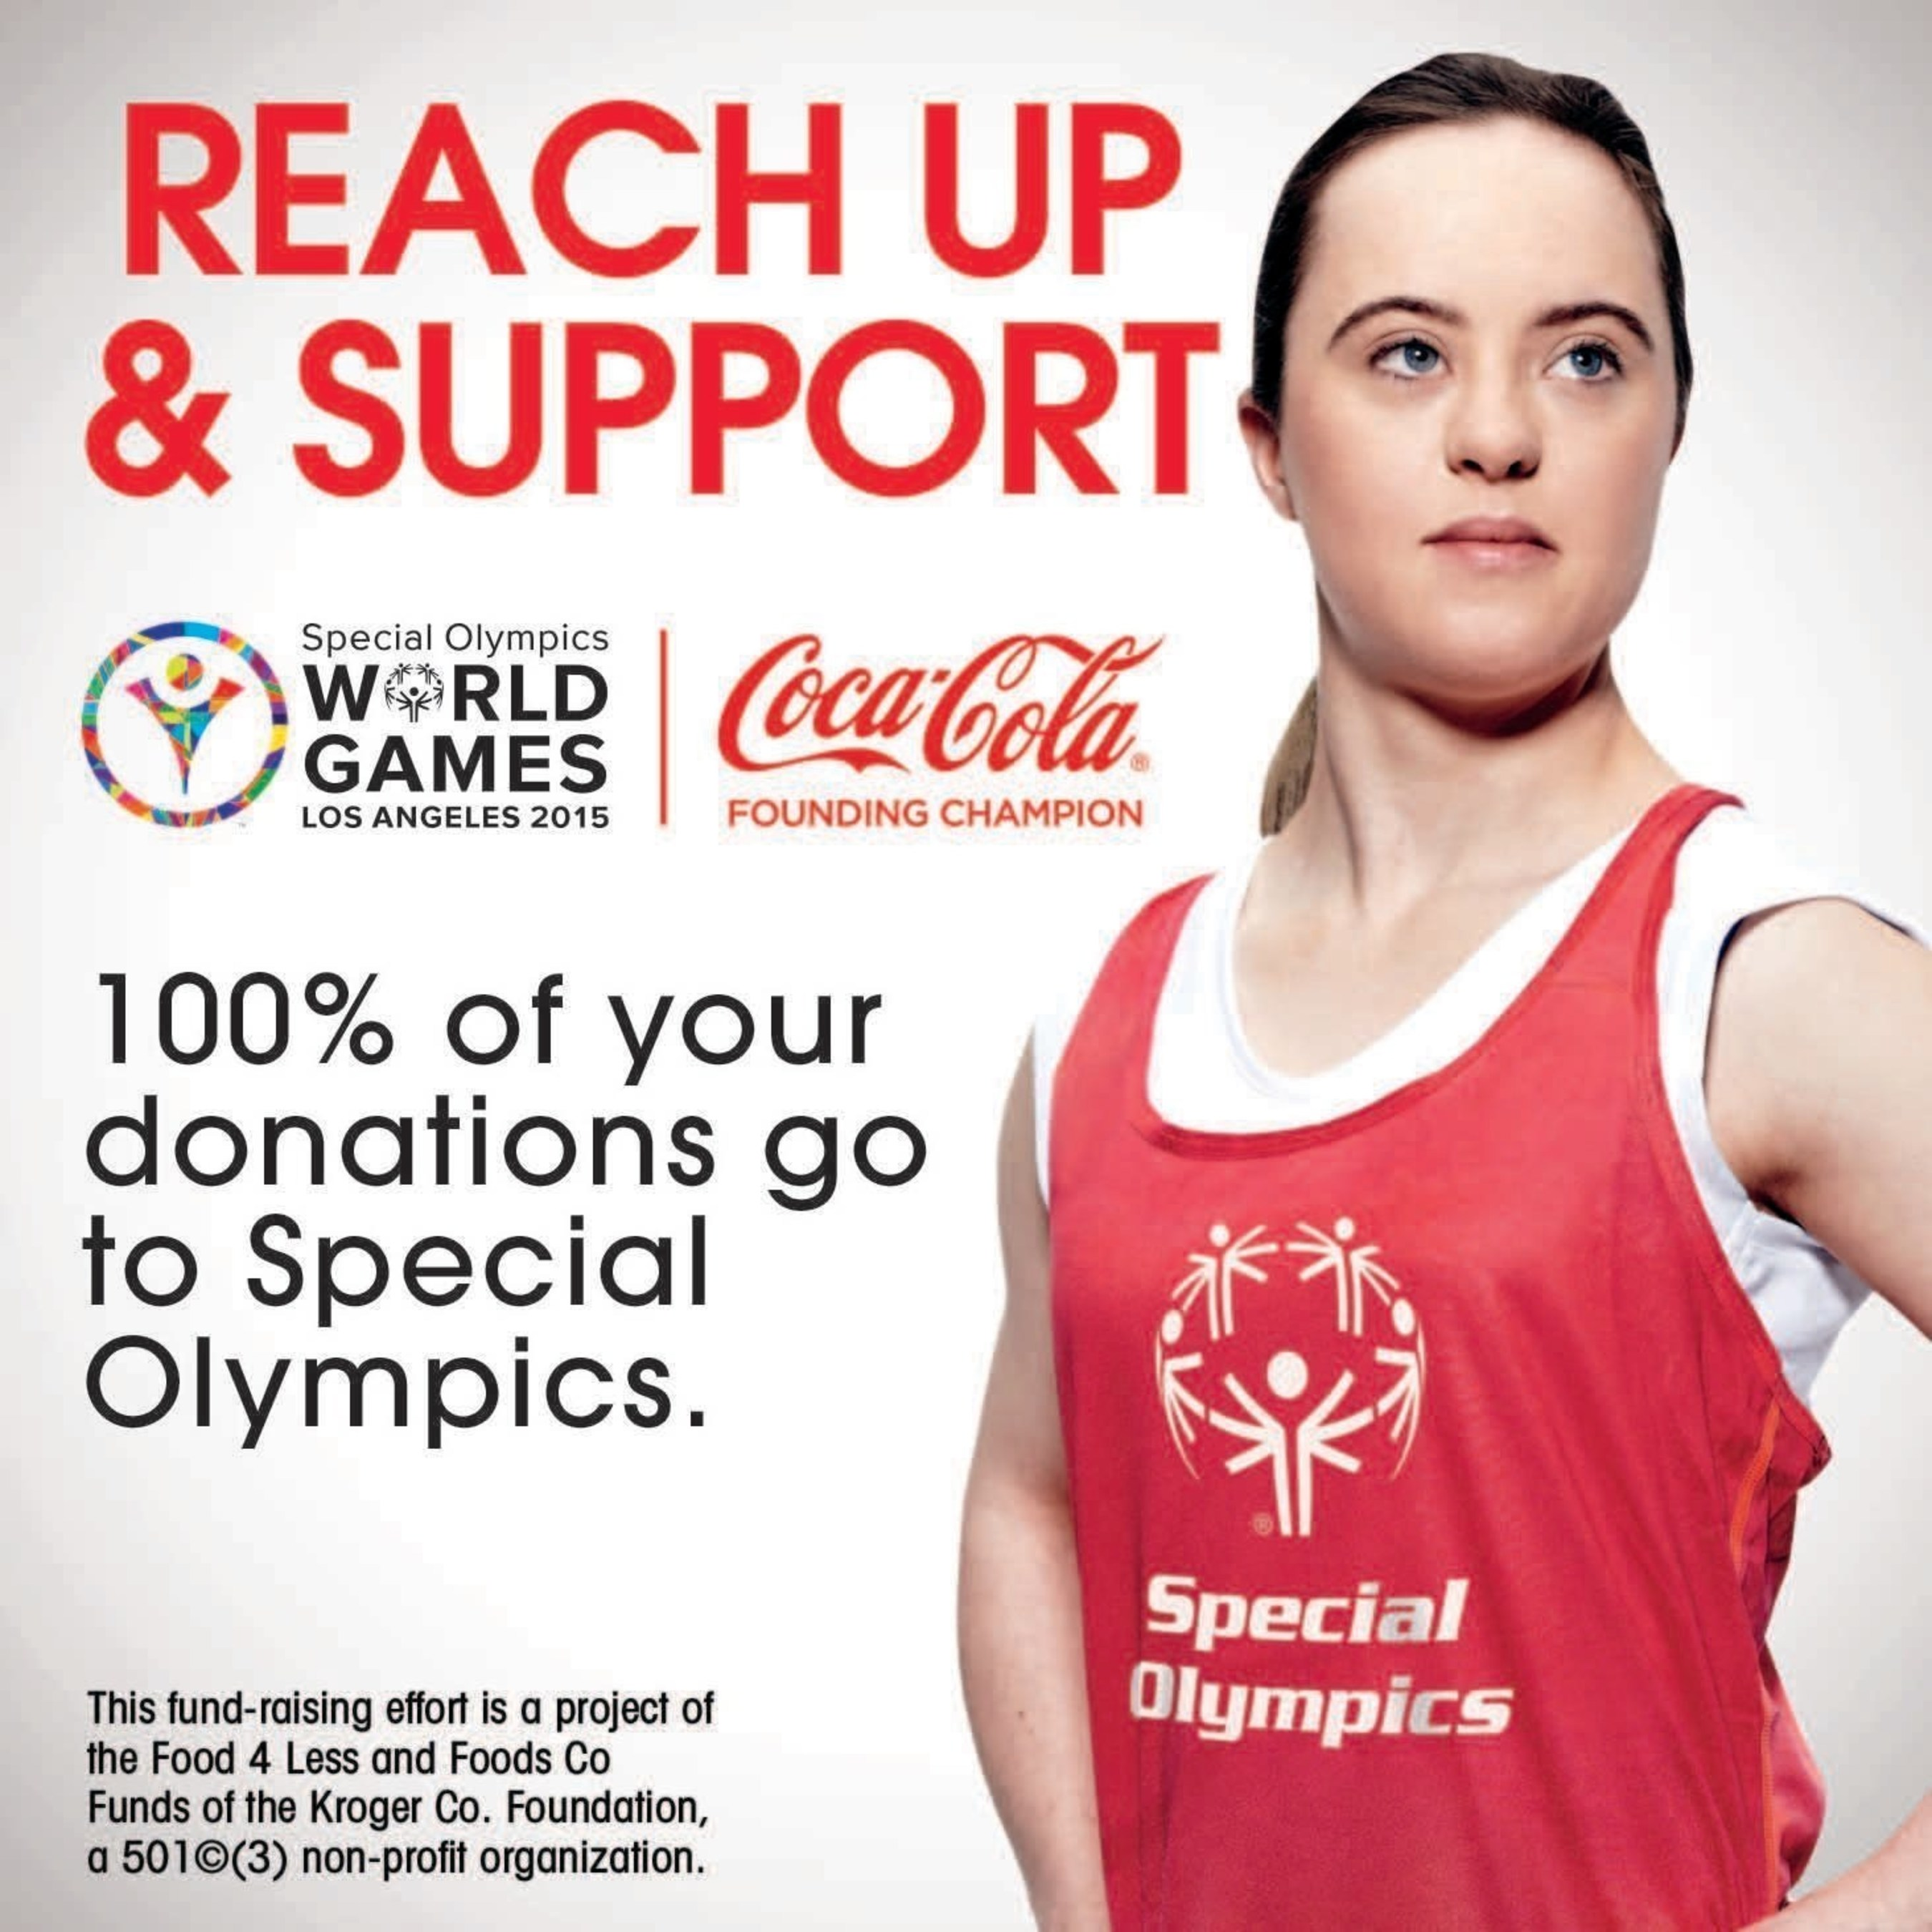 Customers may support Special Olympics by donating their spare change in the checkstand canisters featuring this message in Southern California and Chicago-area Food 4 Less stores and Central and Northern California Foods Co stores.